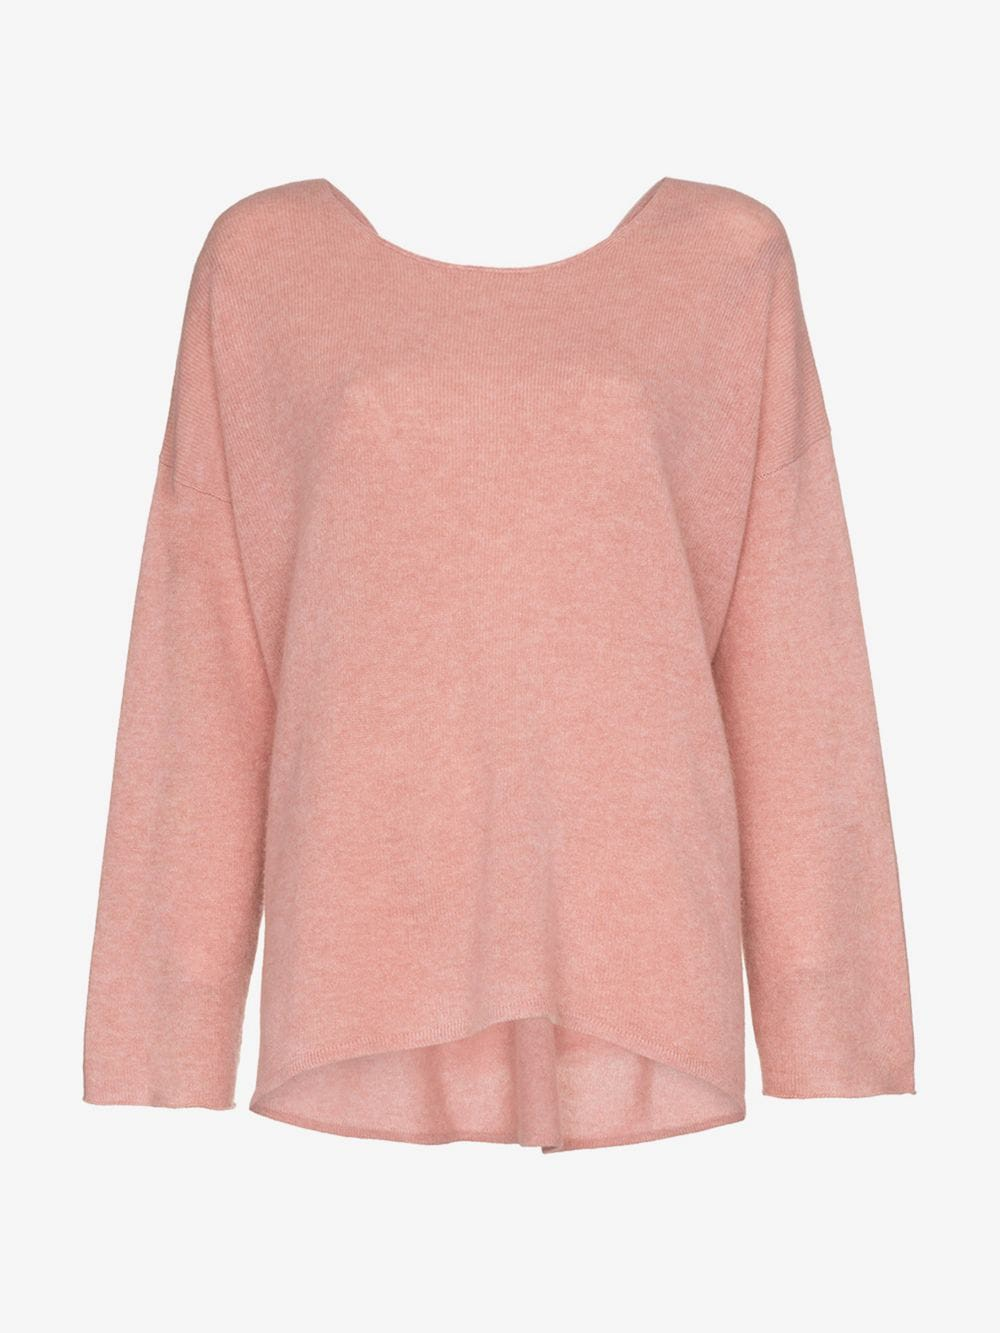 Le Kasha cortina cashmere jumper in pink